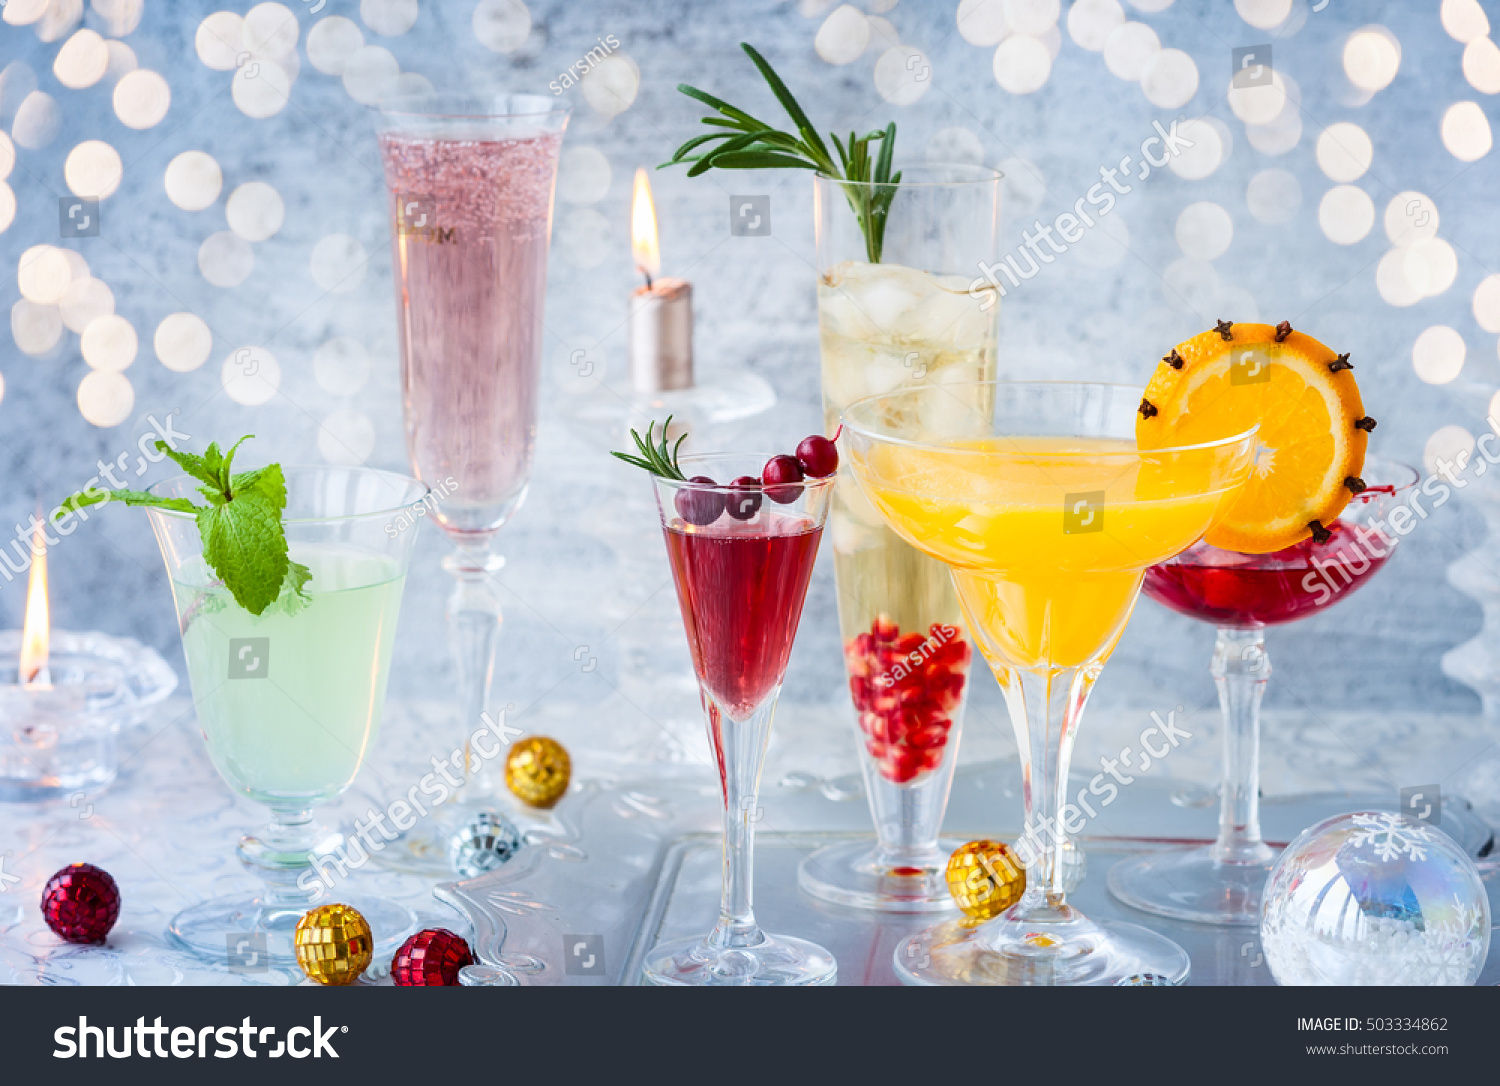 Image result for festive tray of champagne